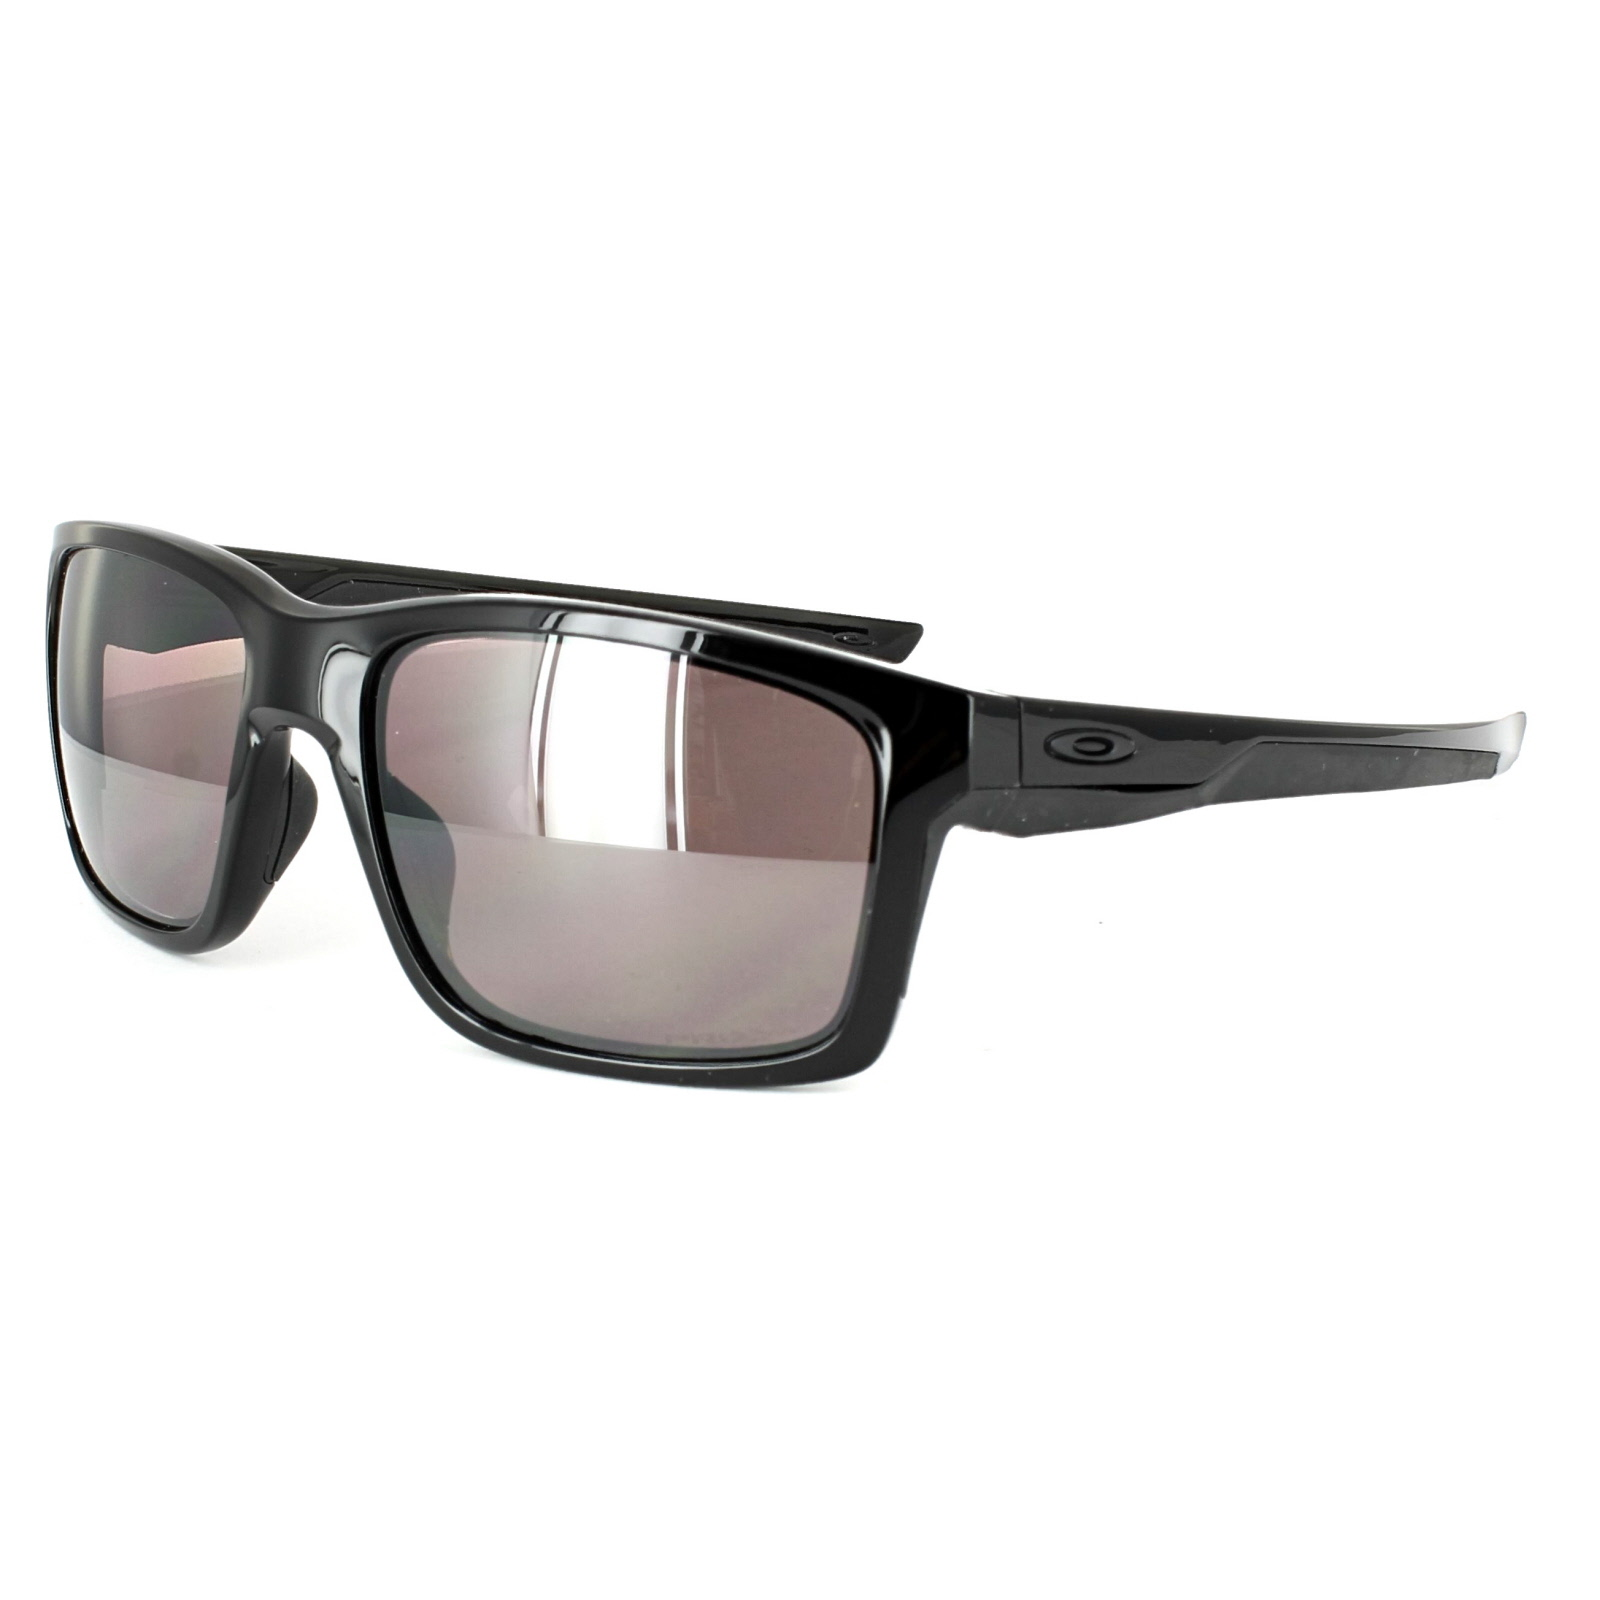 oakley sunglasses prizm  Oakley Sunglasses Mainlink OO9264-08 Polished Black Prizm Daily ...